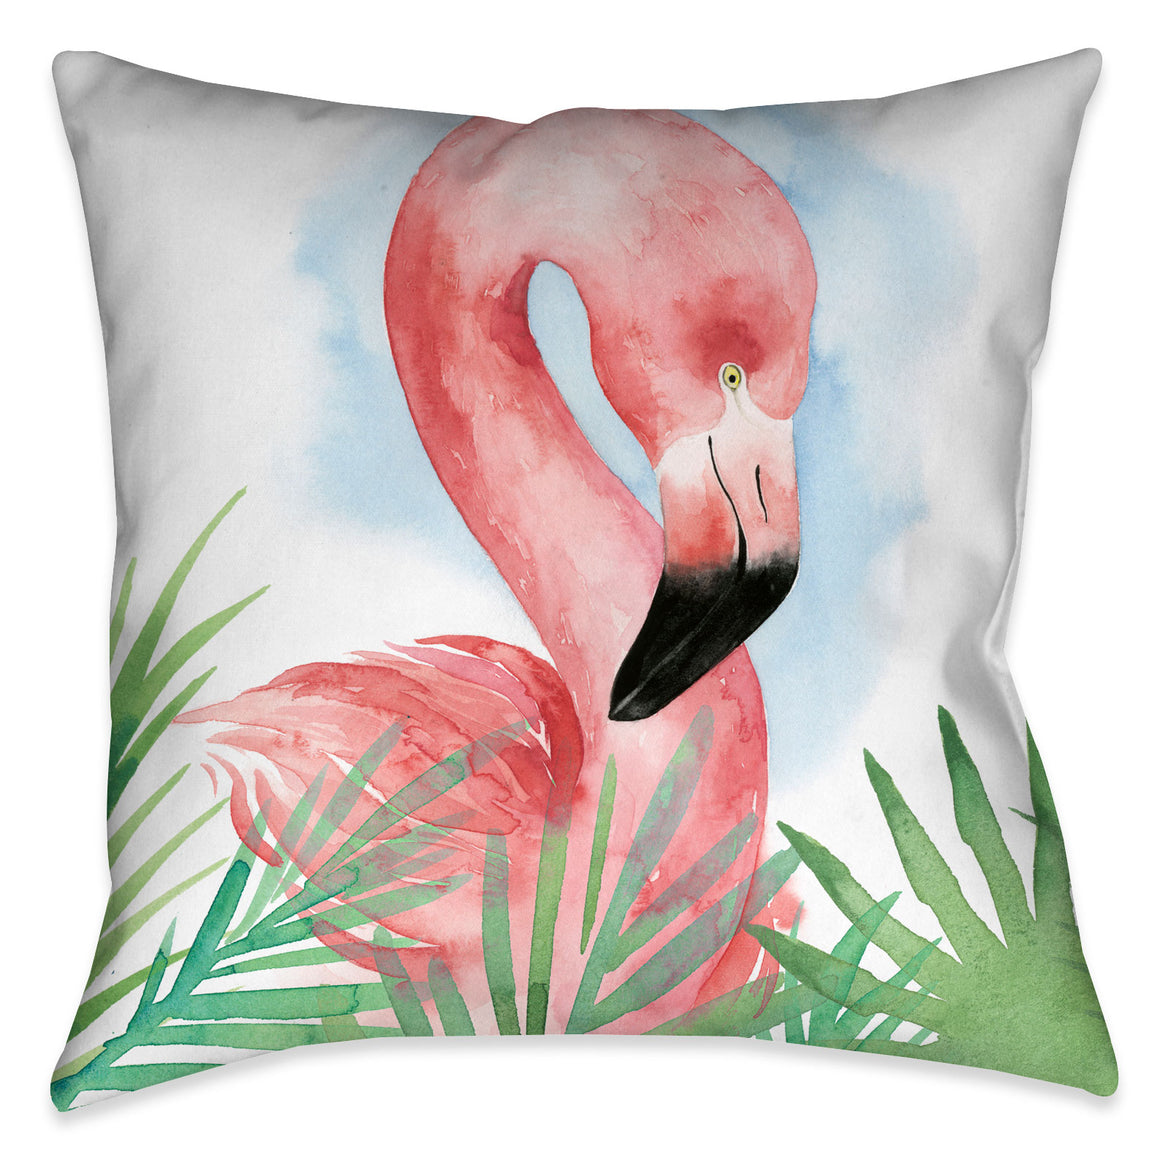 This whimsical Watercolor Flamingo Outdoor Decorative Pillow carries a fun summertime essence. This pillow design would make a great addition for any outdoor space!